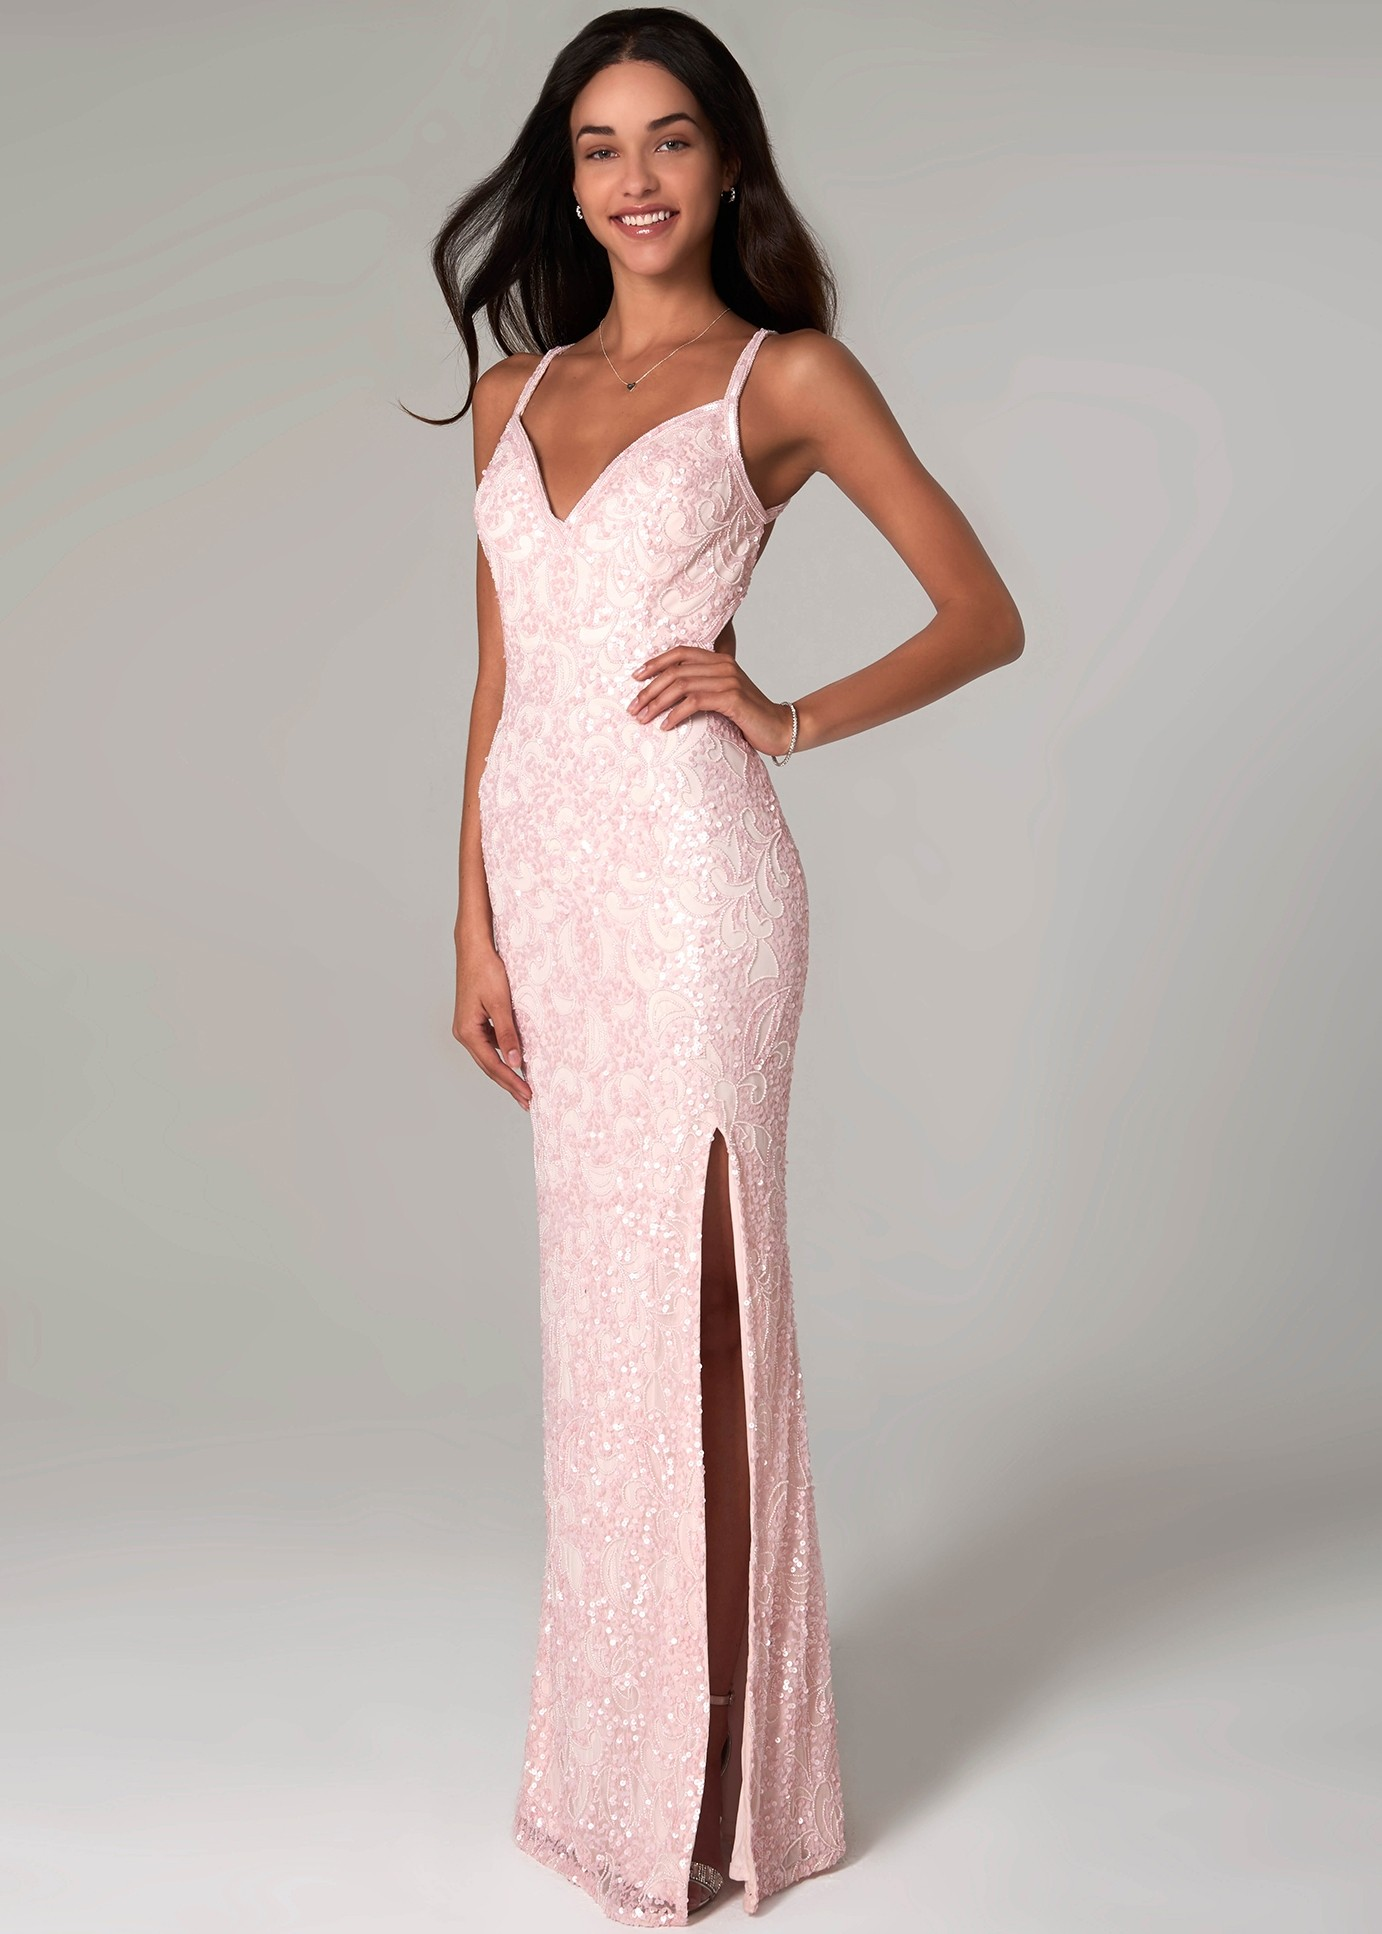 Scala 48932 Strappy Back Sequin Gown